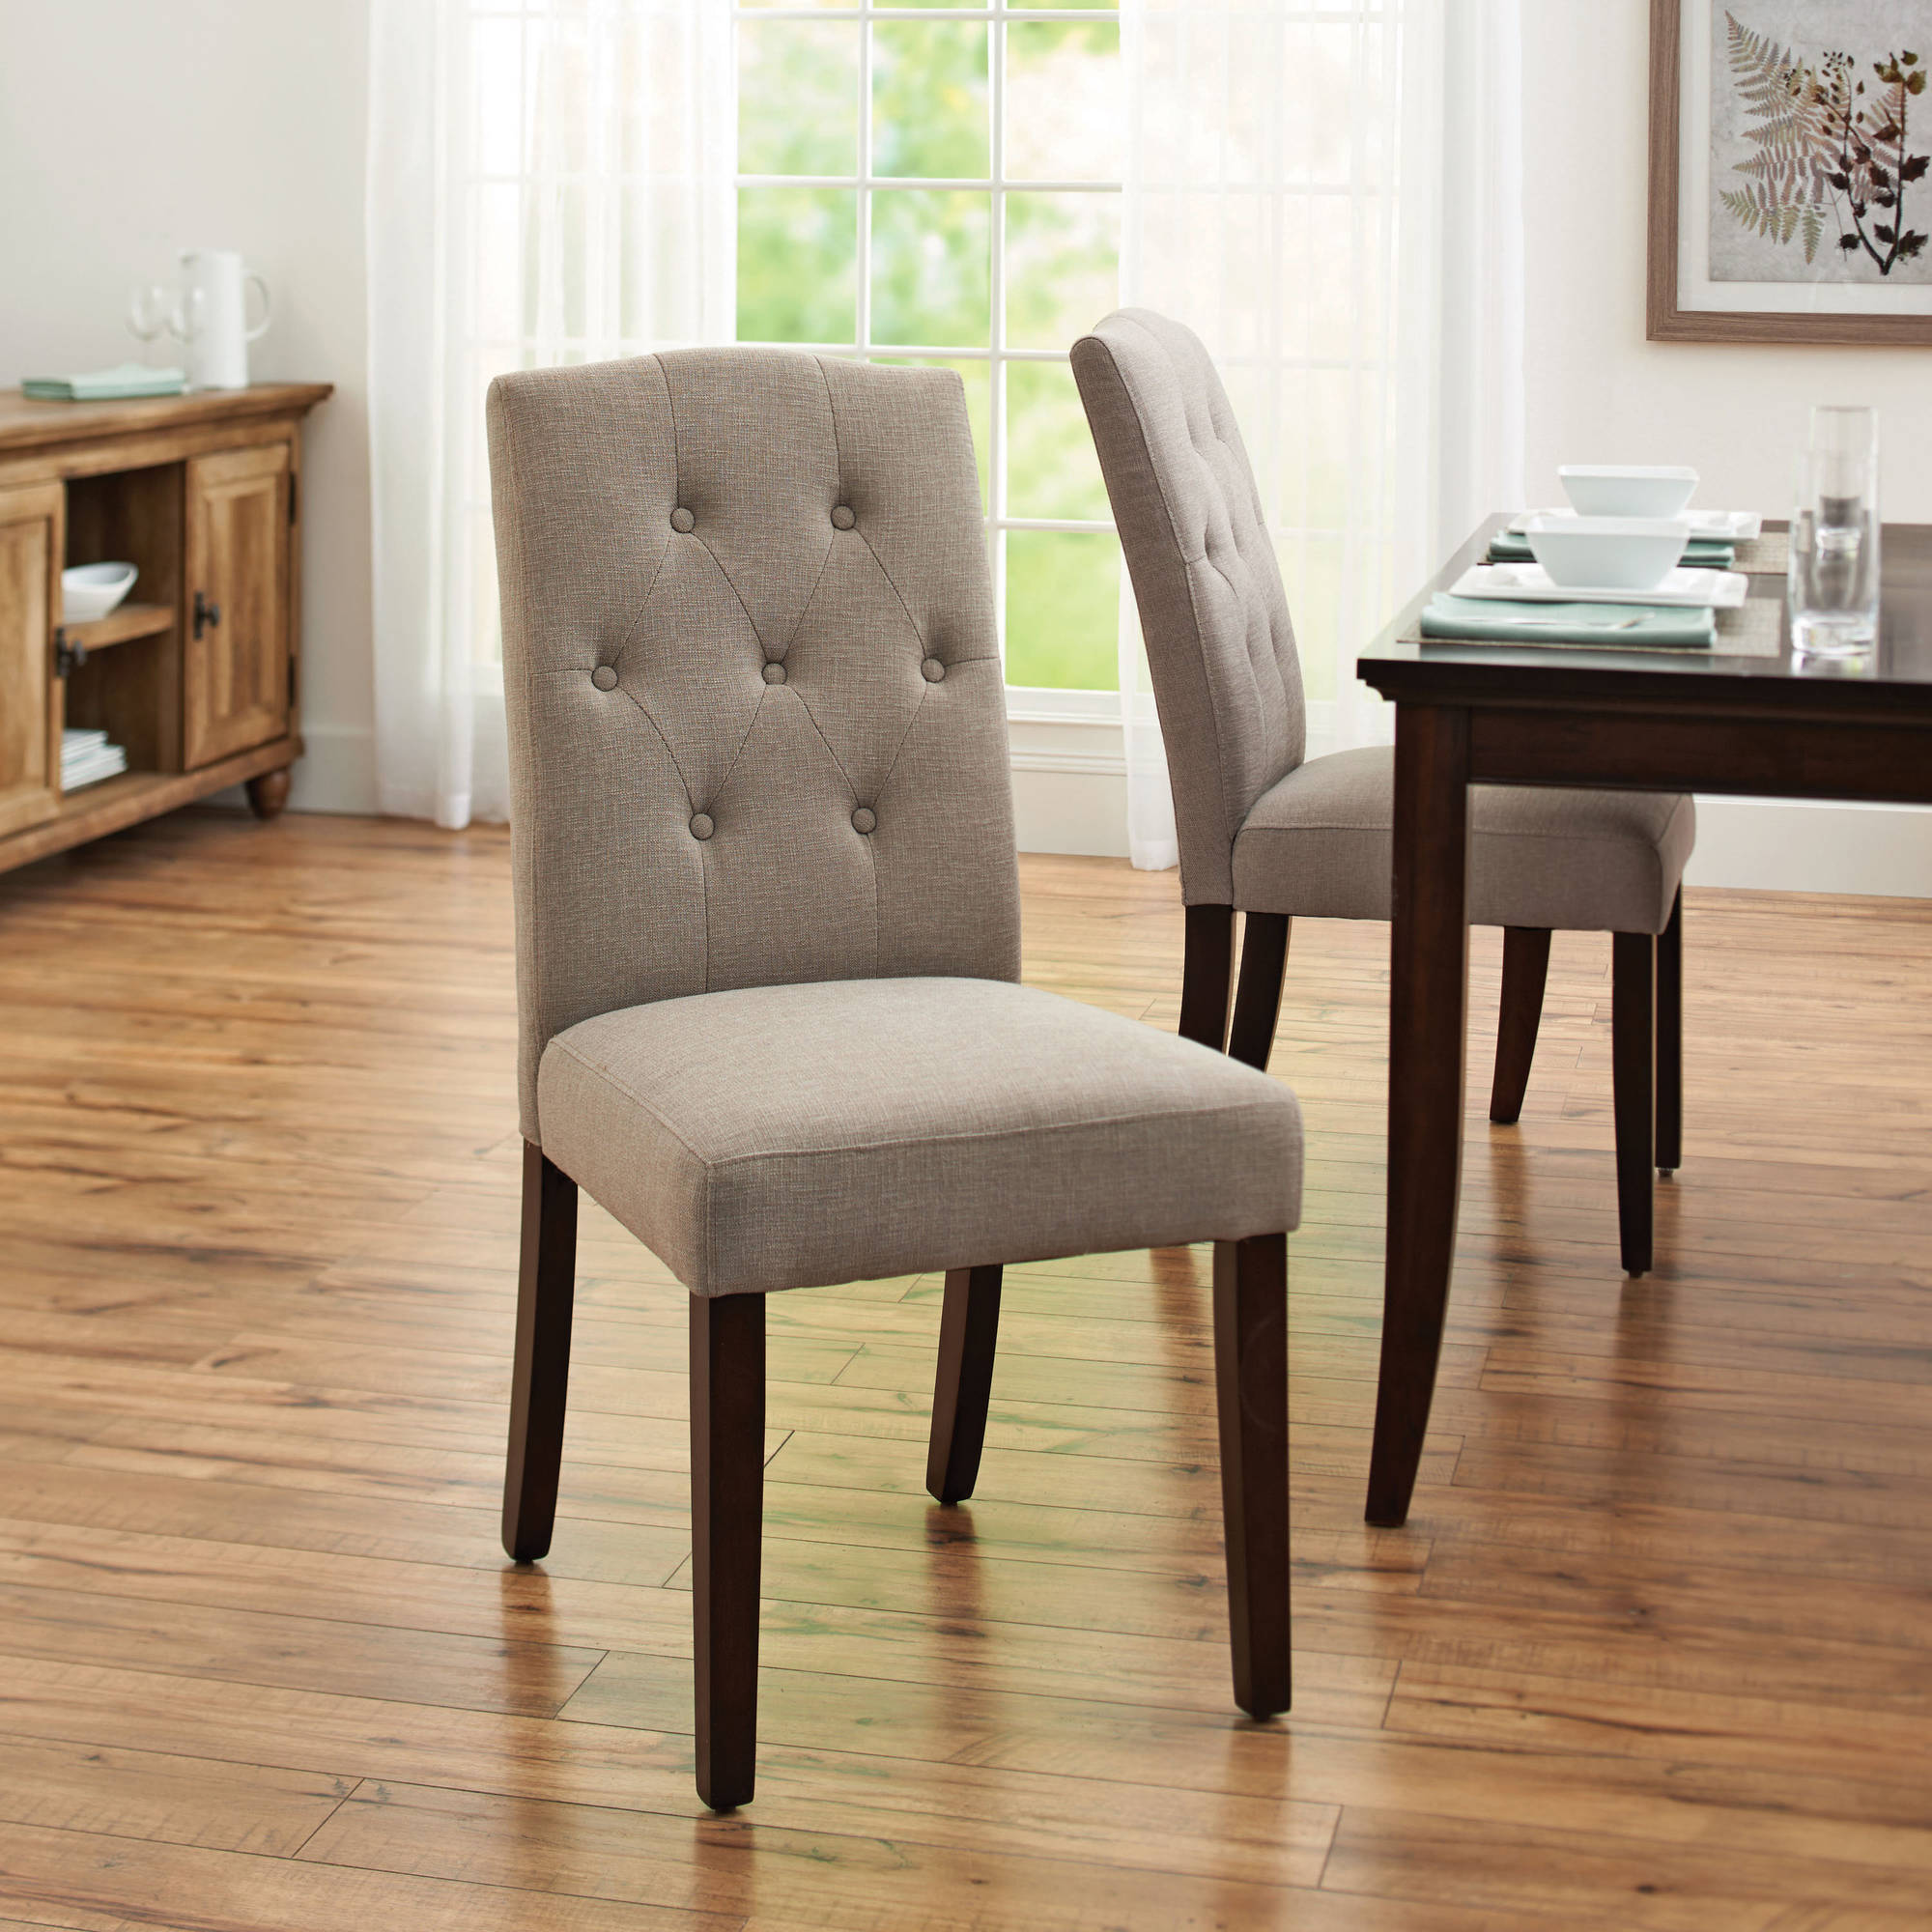 better homes and gardens parsons tufted dining chair, taupe